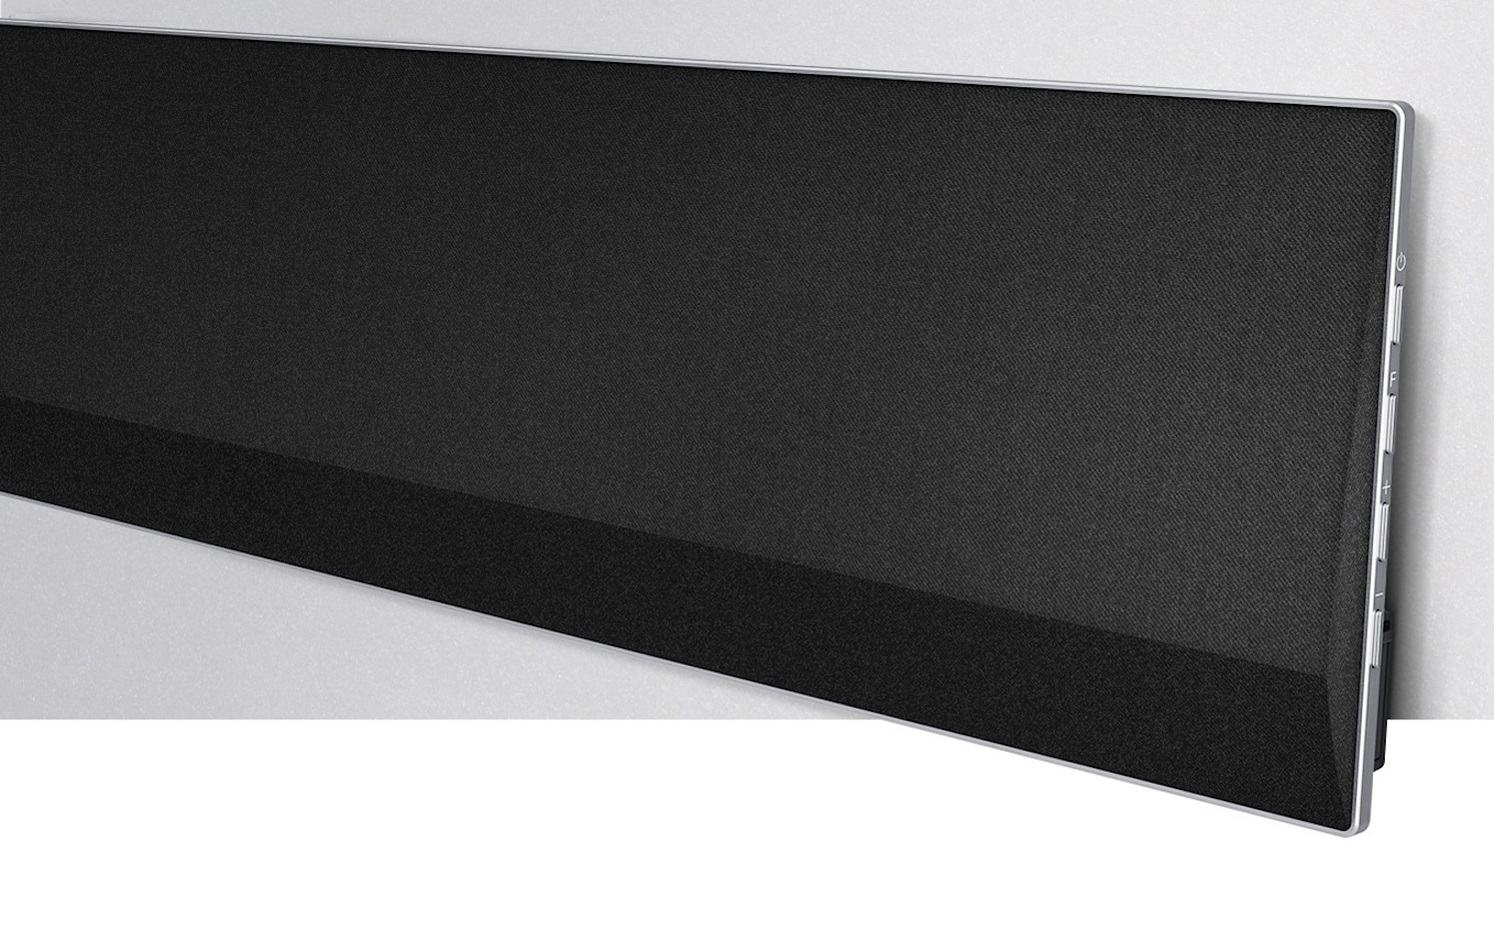 LG SOUNDBAR GX: AUDIO SUPERIORE